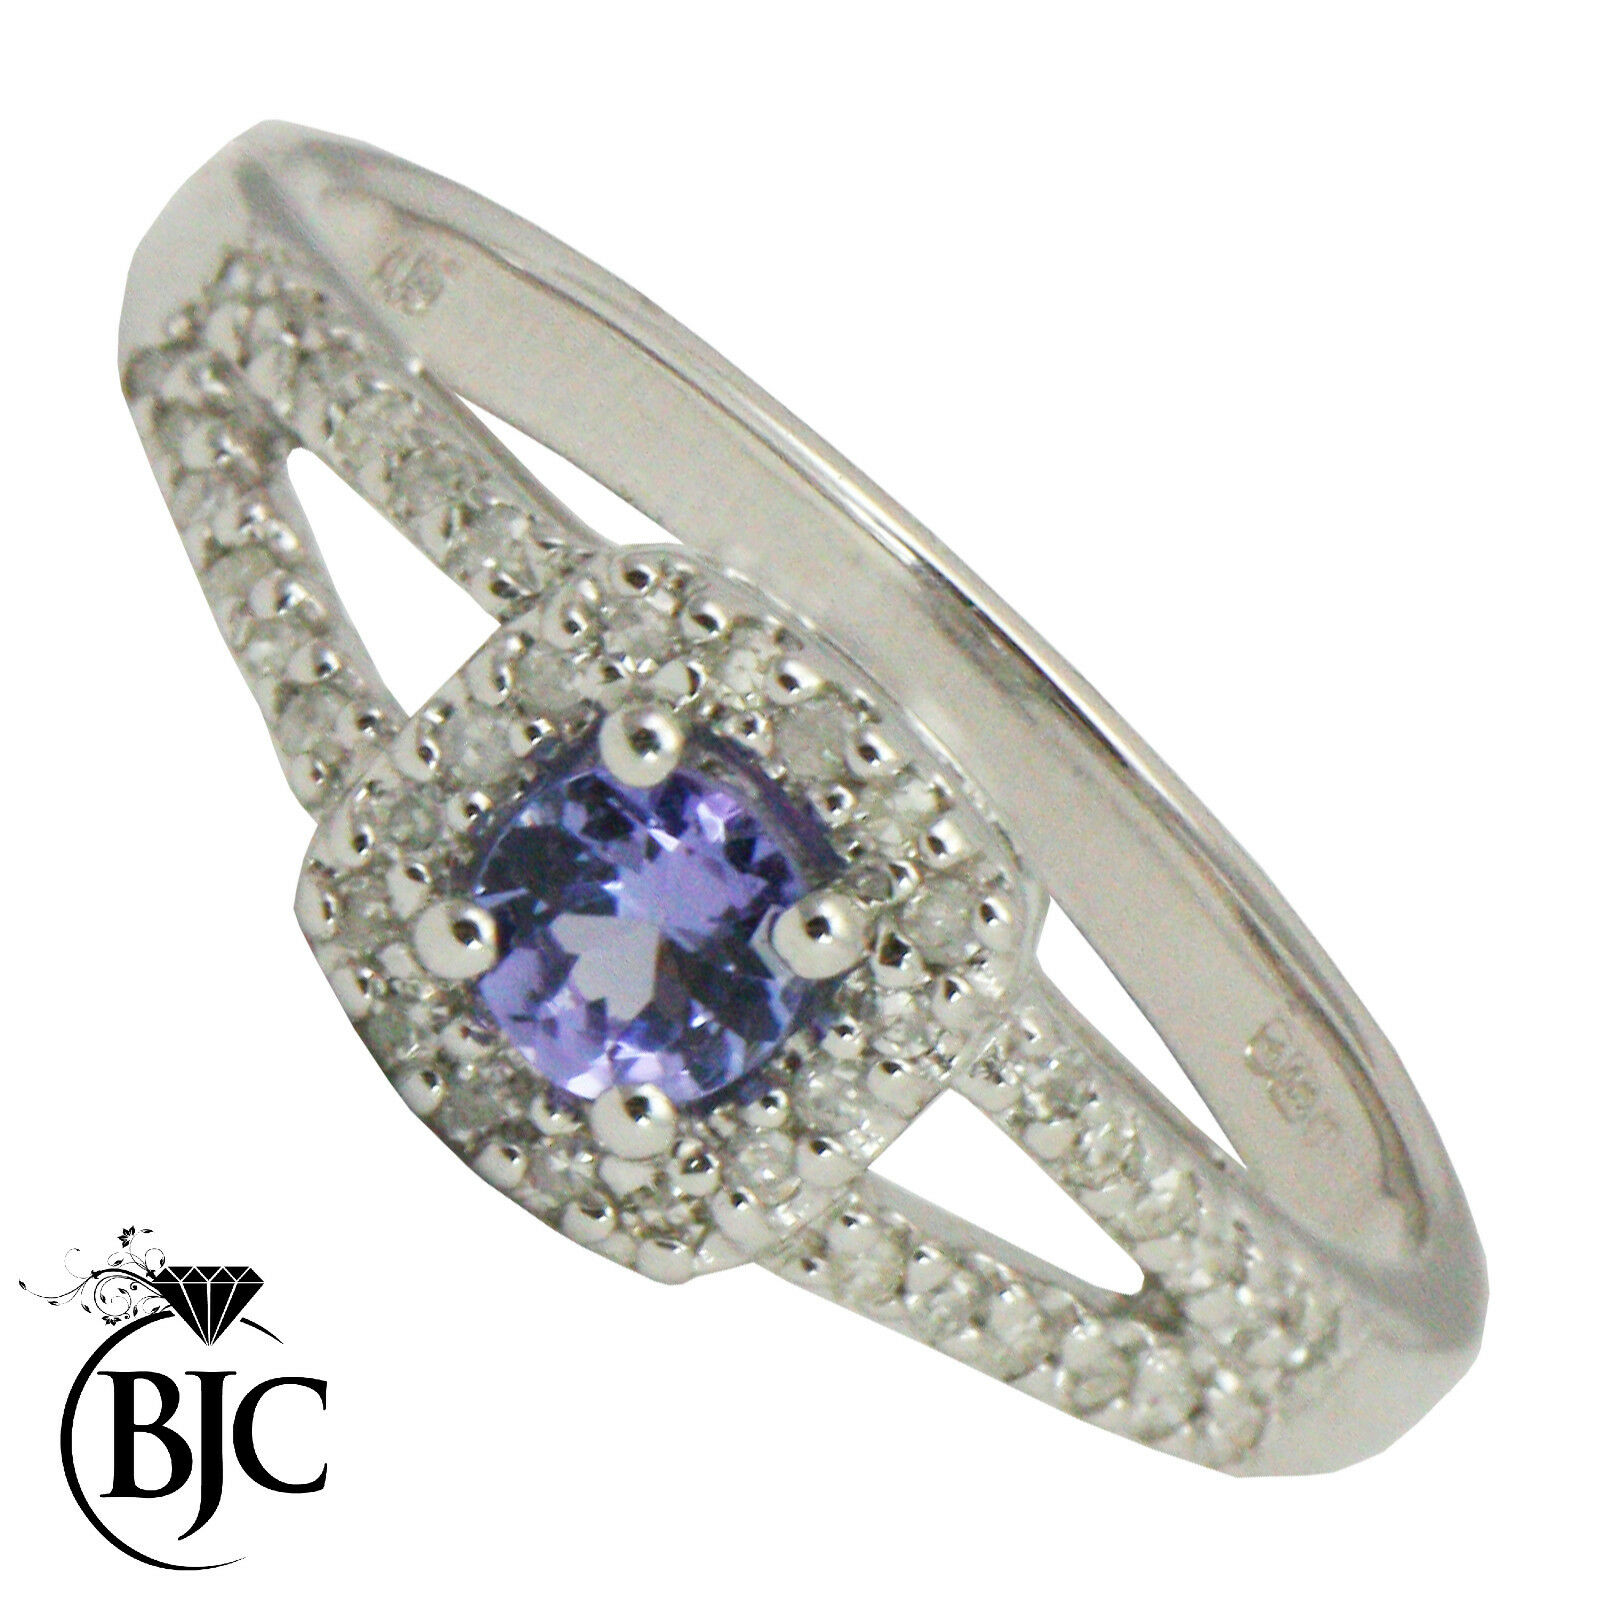 BJC 9 Ct OR white TANZANITE & diamant serti size N Coussin Bague R65